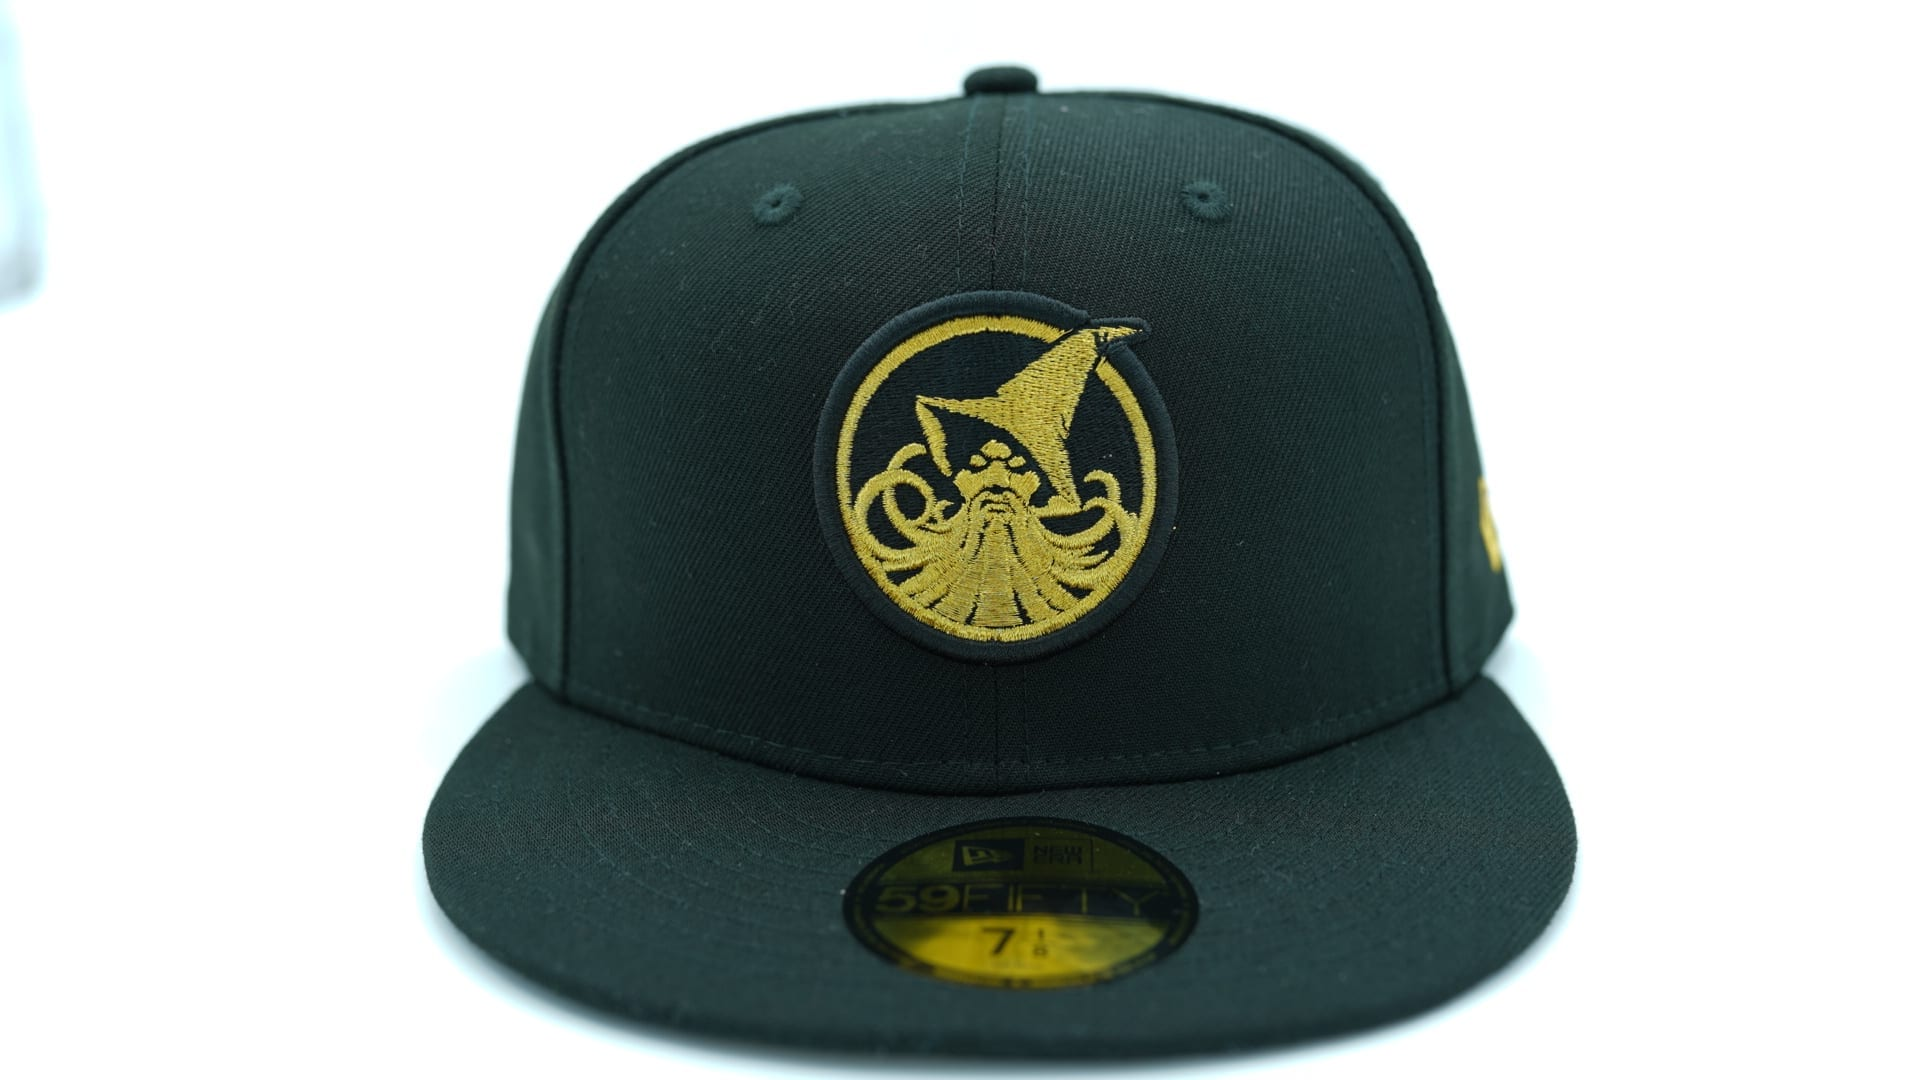 3fc6b2cb780 You can also find the official NRL logo on the back panel of the fitted.  Grab one today at CULTUREKINGS.COM.AU.